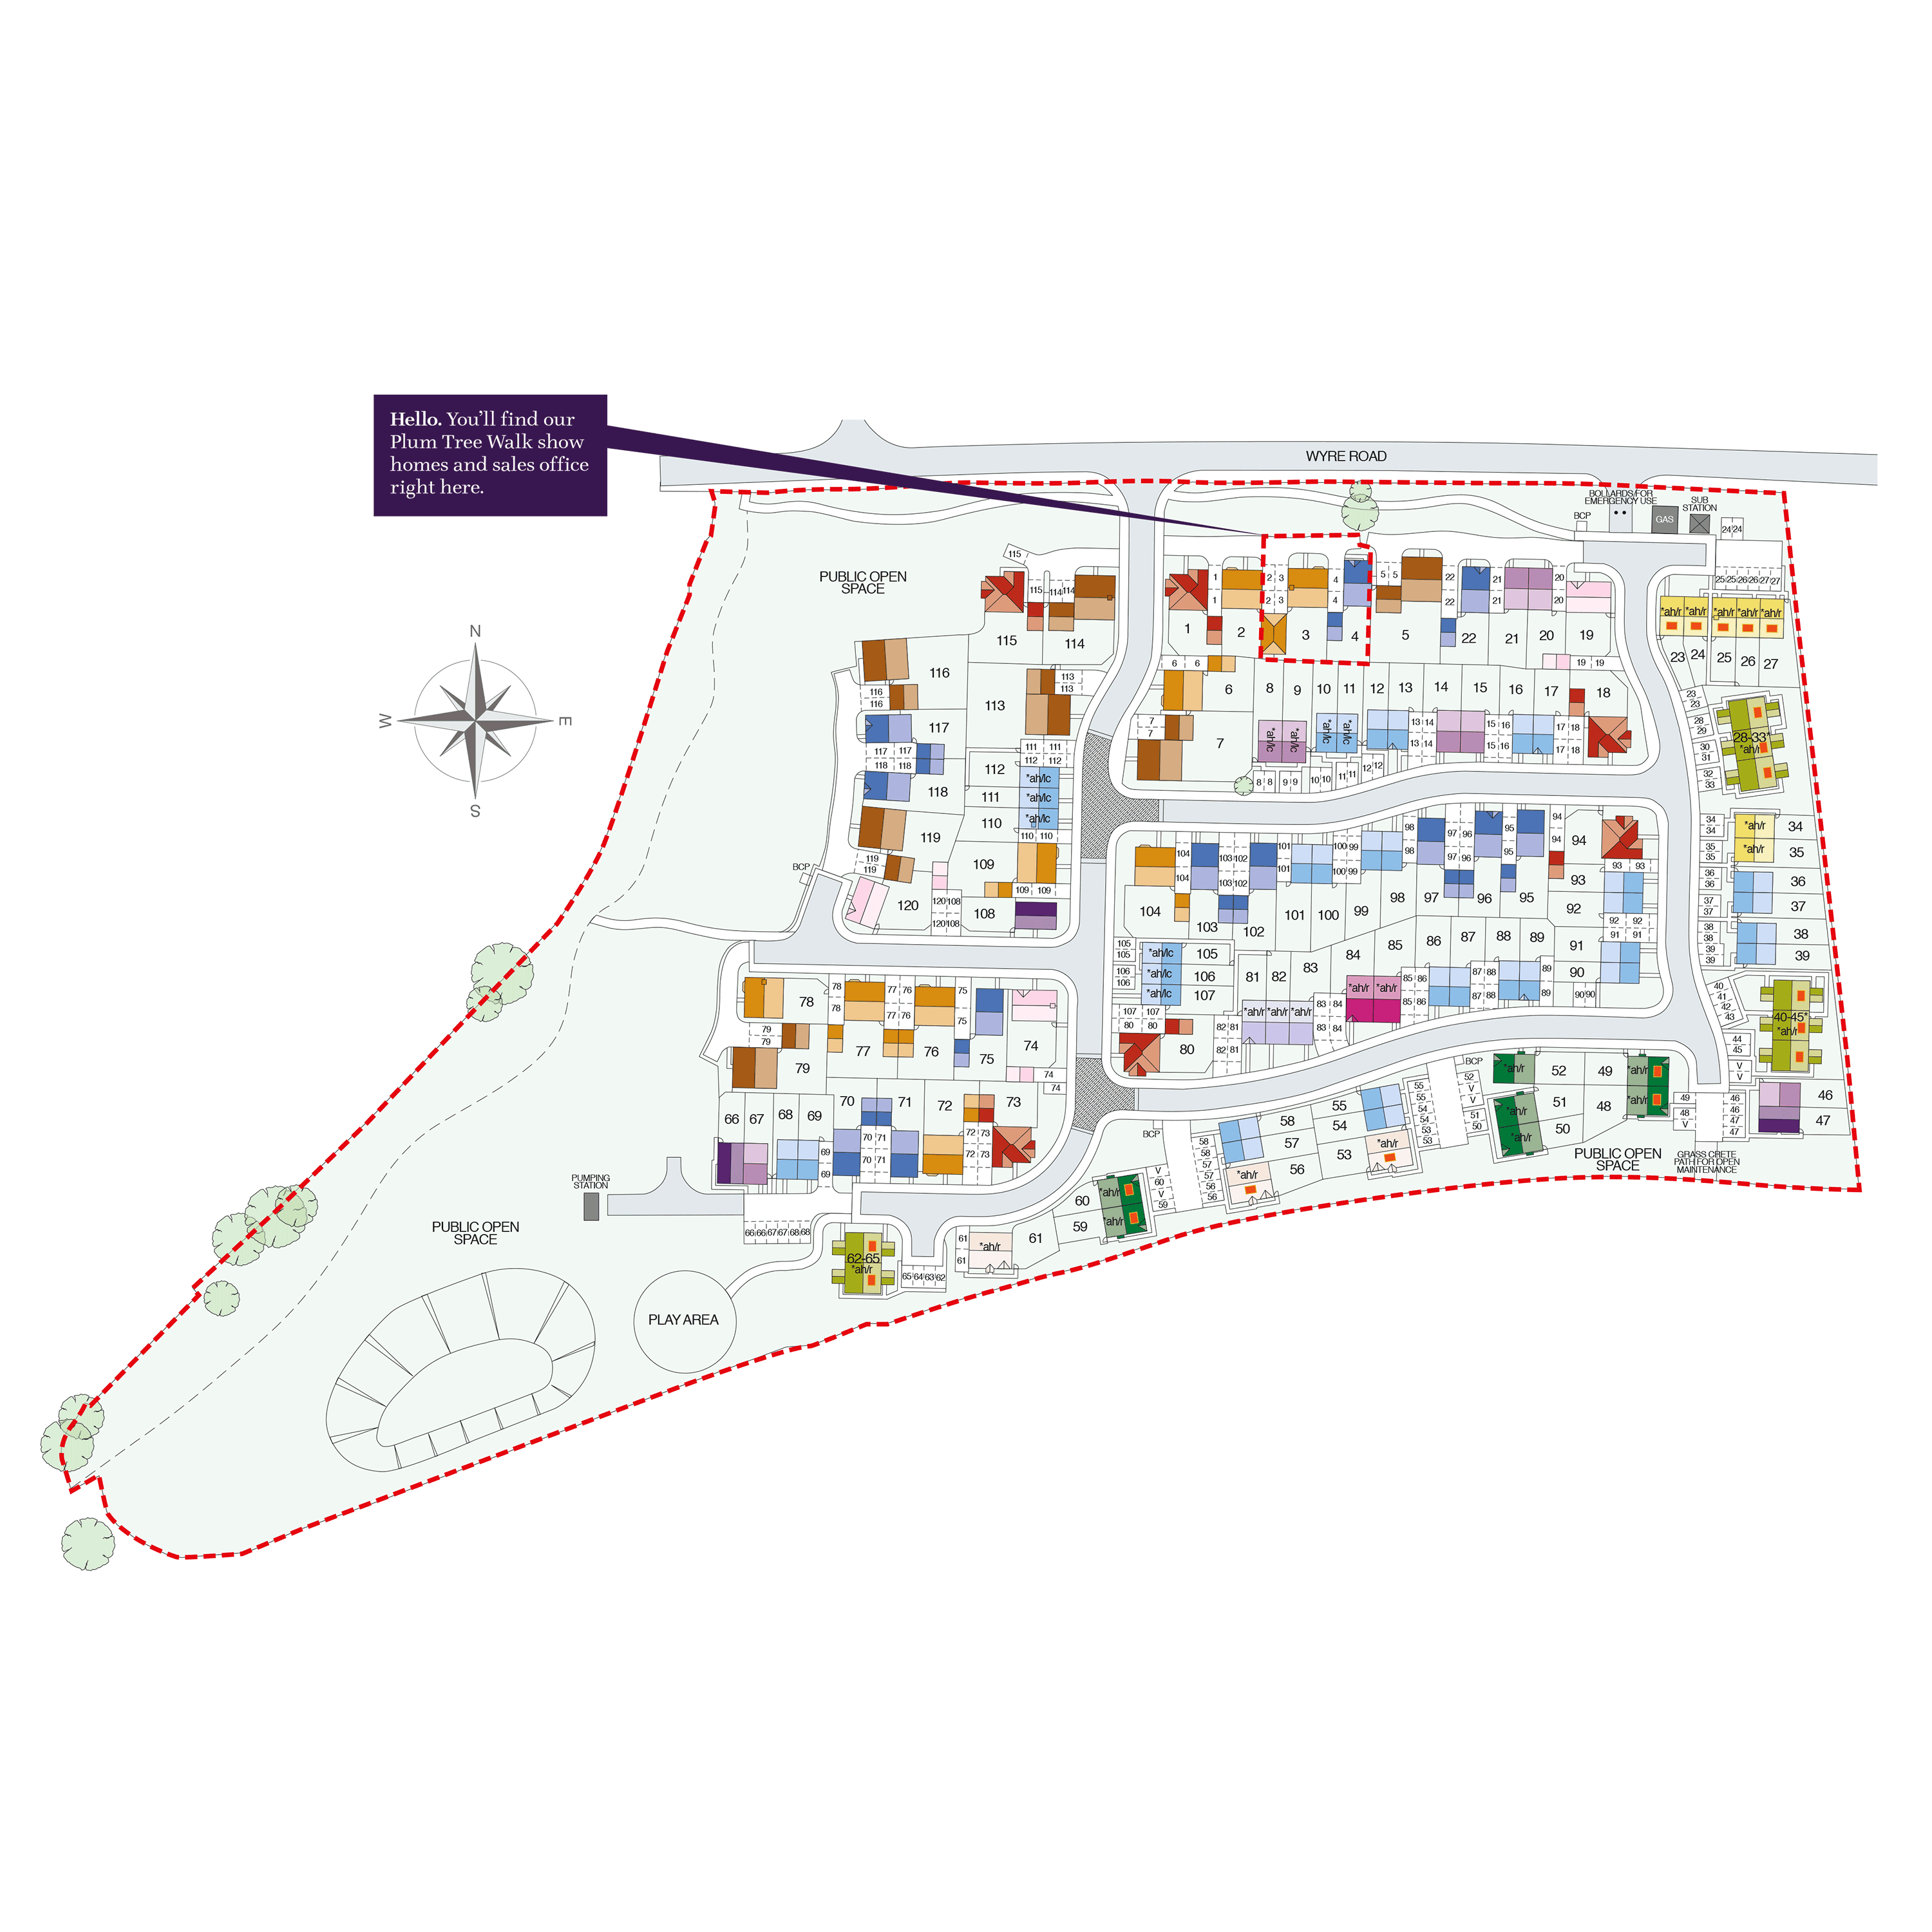 46231_TWM---Plum-Tree-Walk-brochure-siteplan